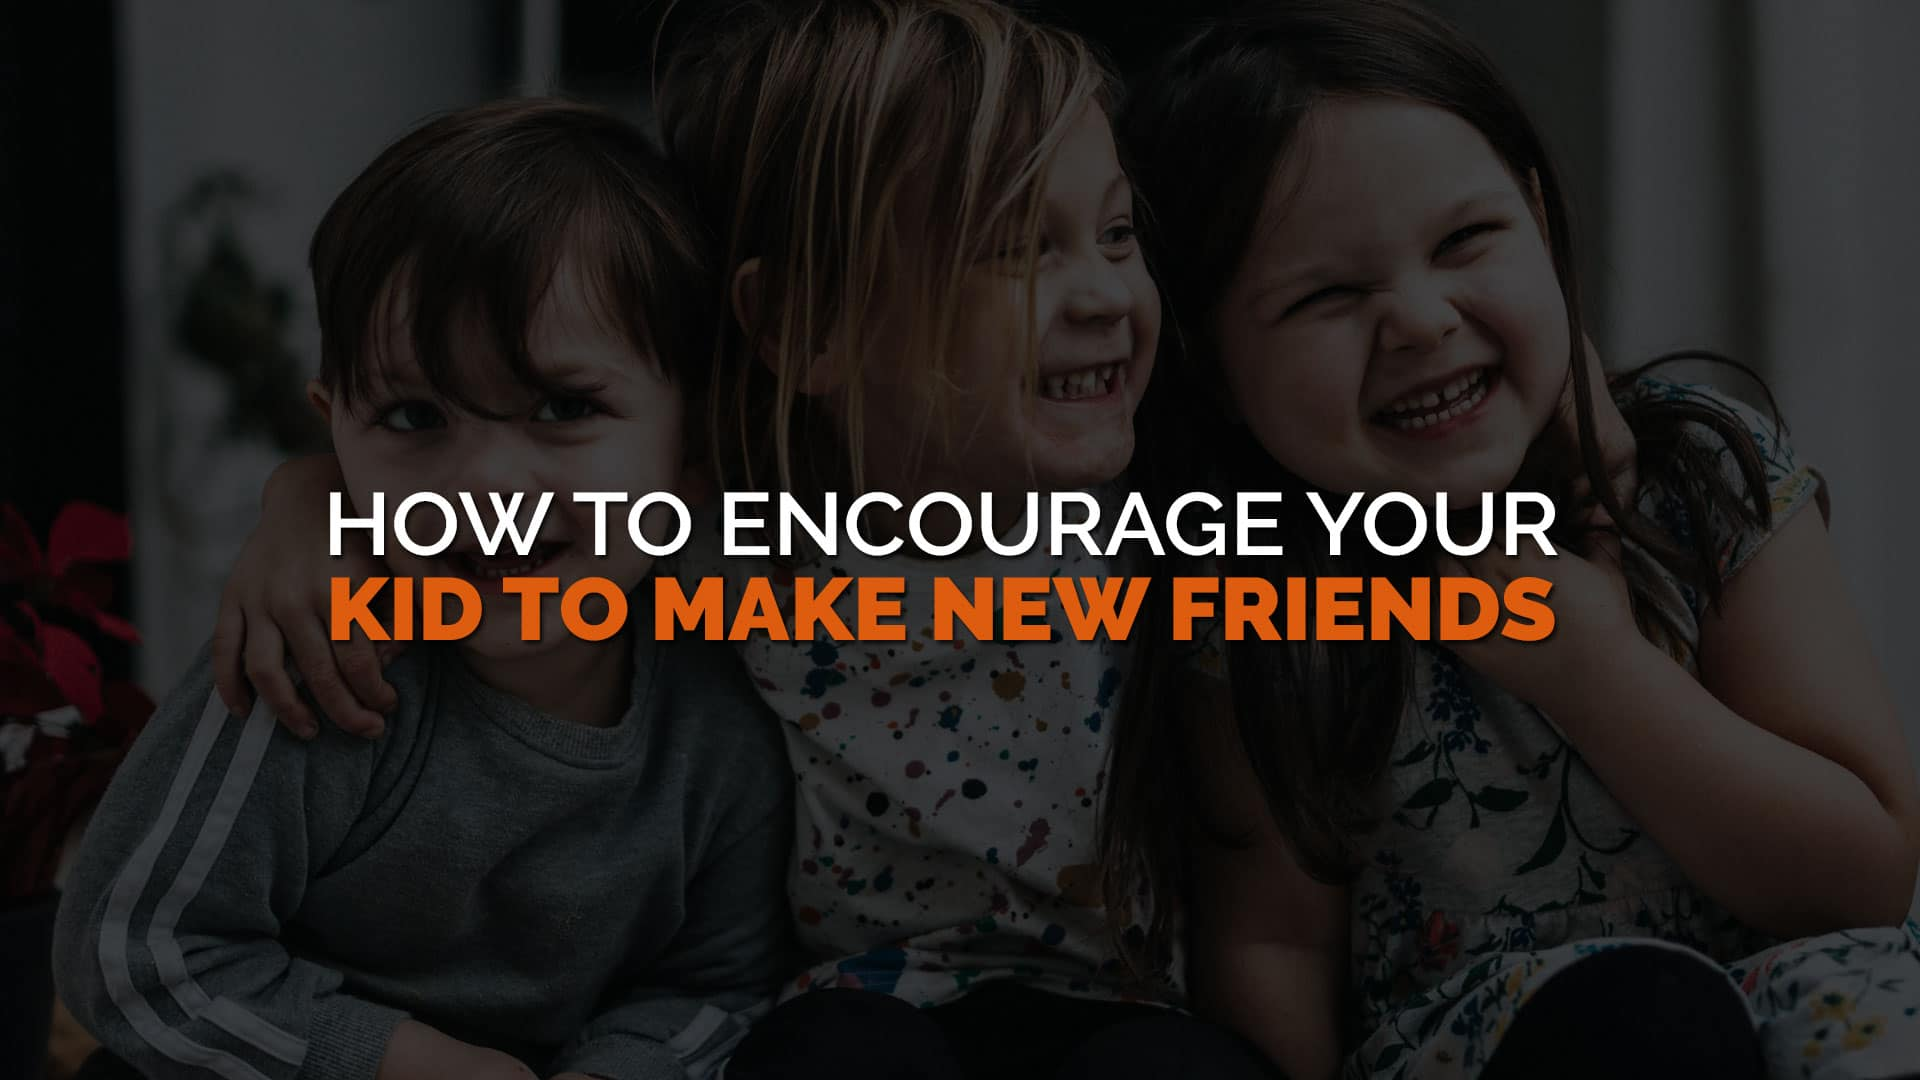 How to Encourage Your Kid to Make New Friends